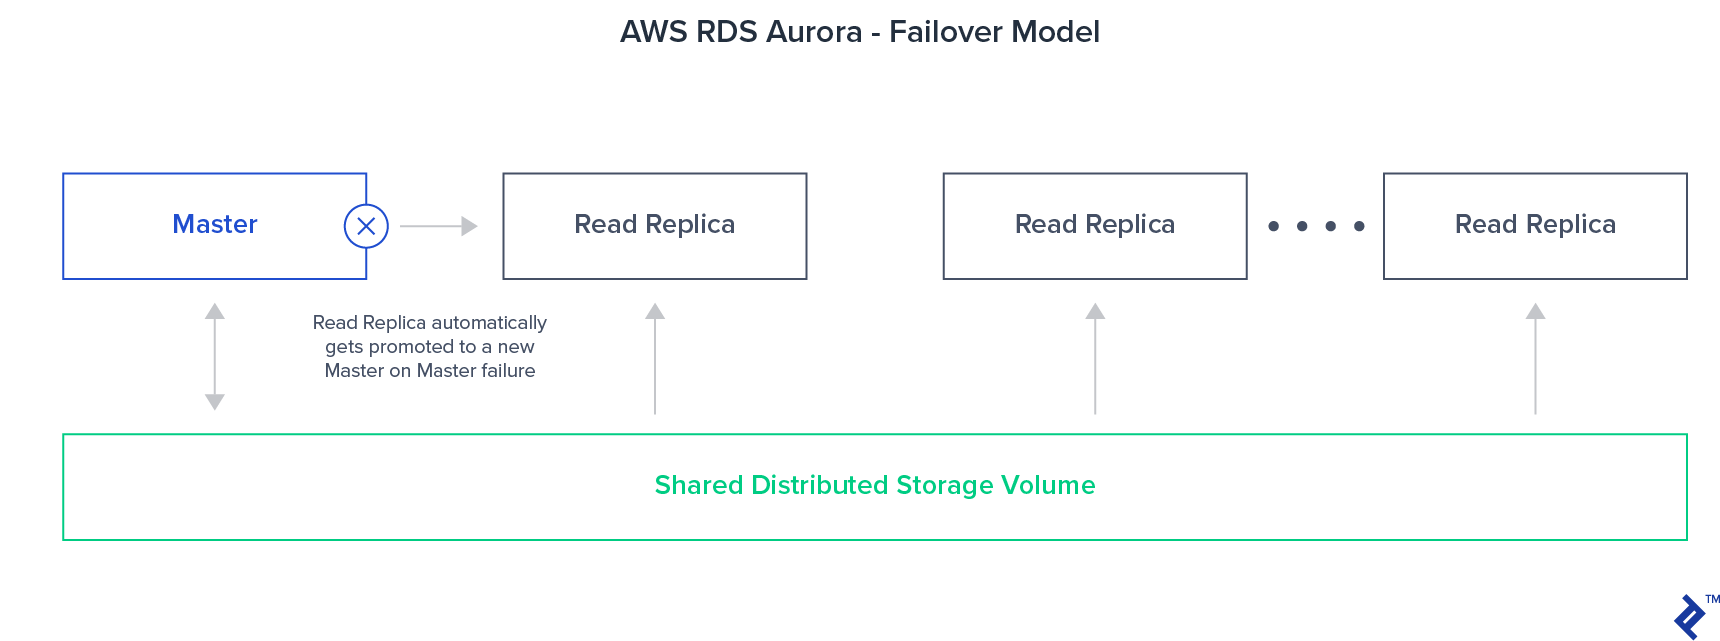 Automatic Amazon Aurora instance failover model